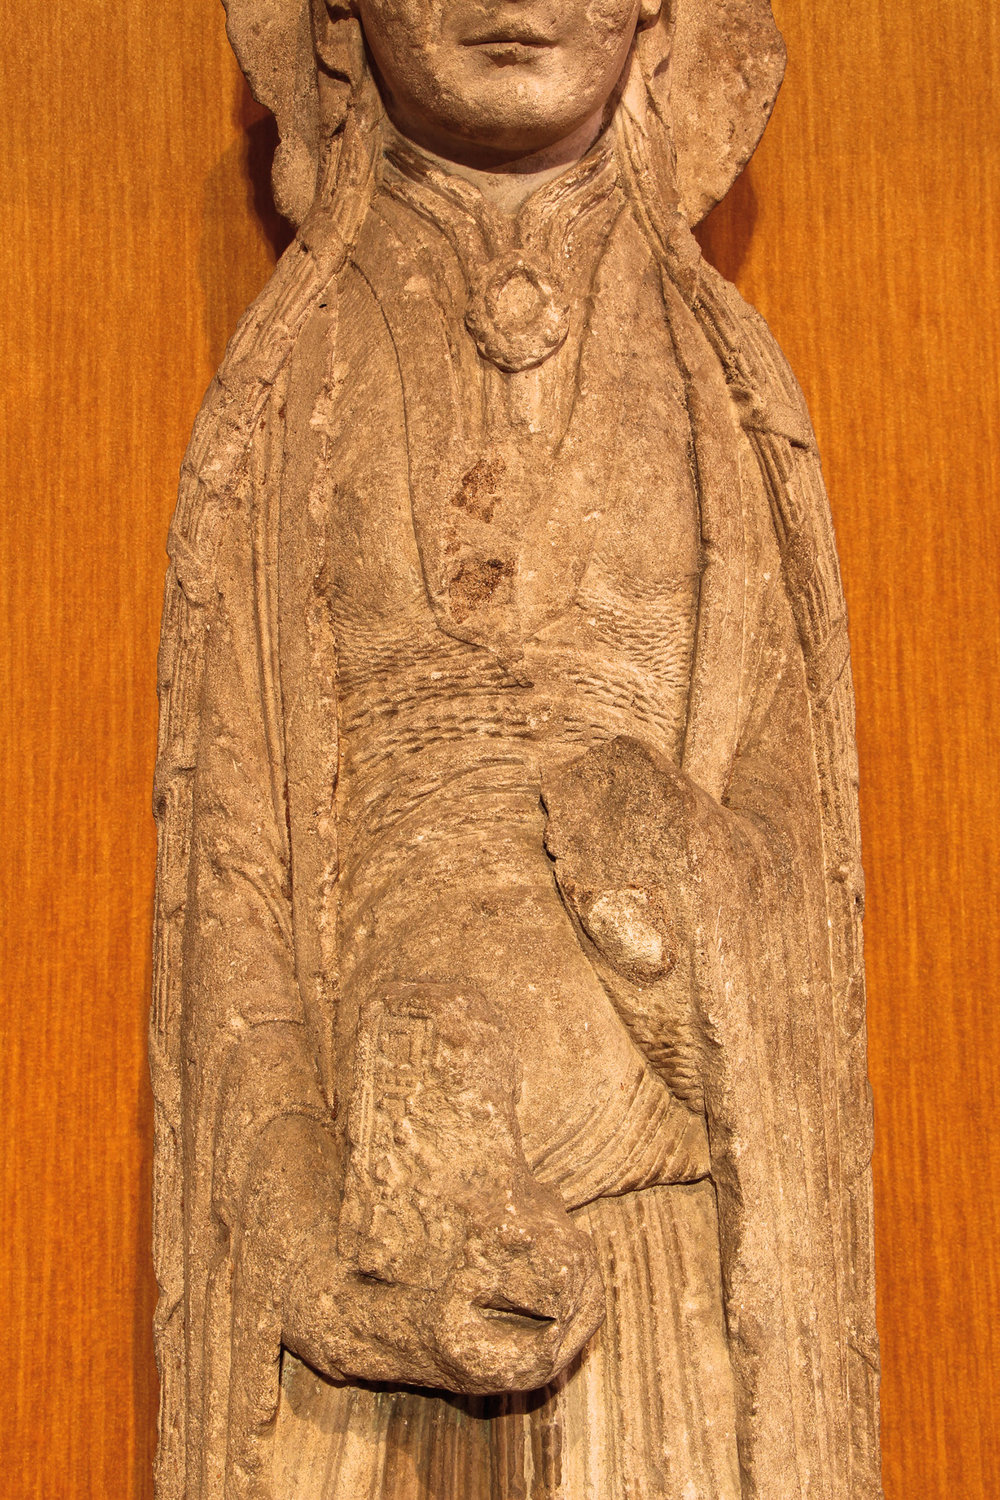 Figure 2: The woman depicted in the sculpture wears the garments of a highborn medieval lady. She holds the remains of a book in her hands.